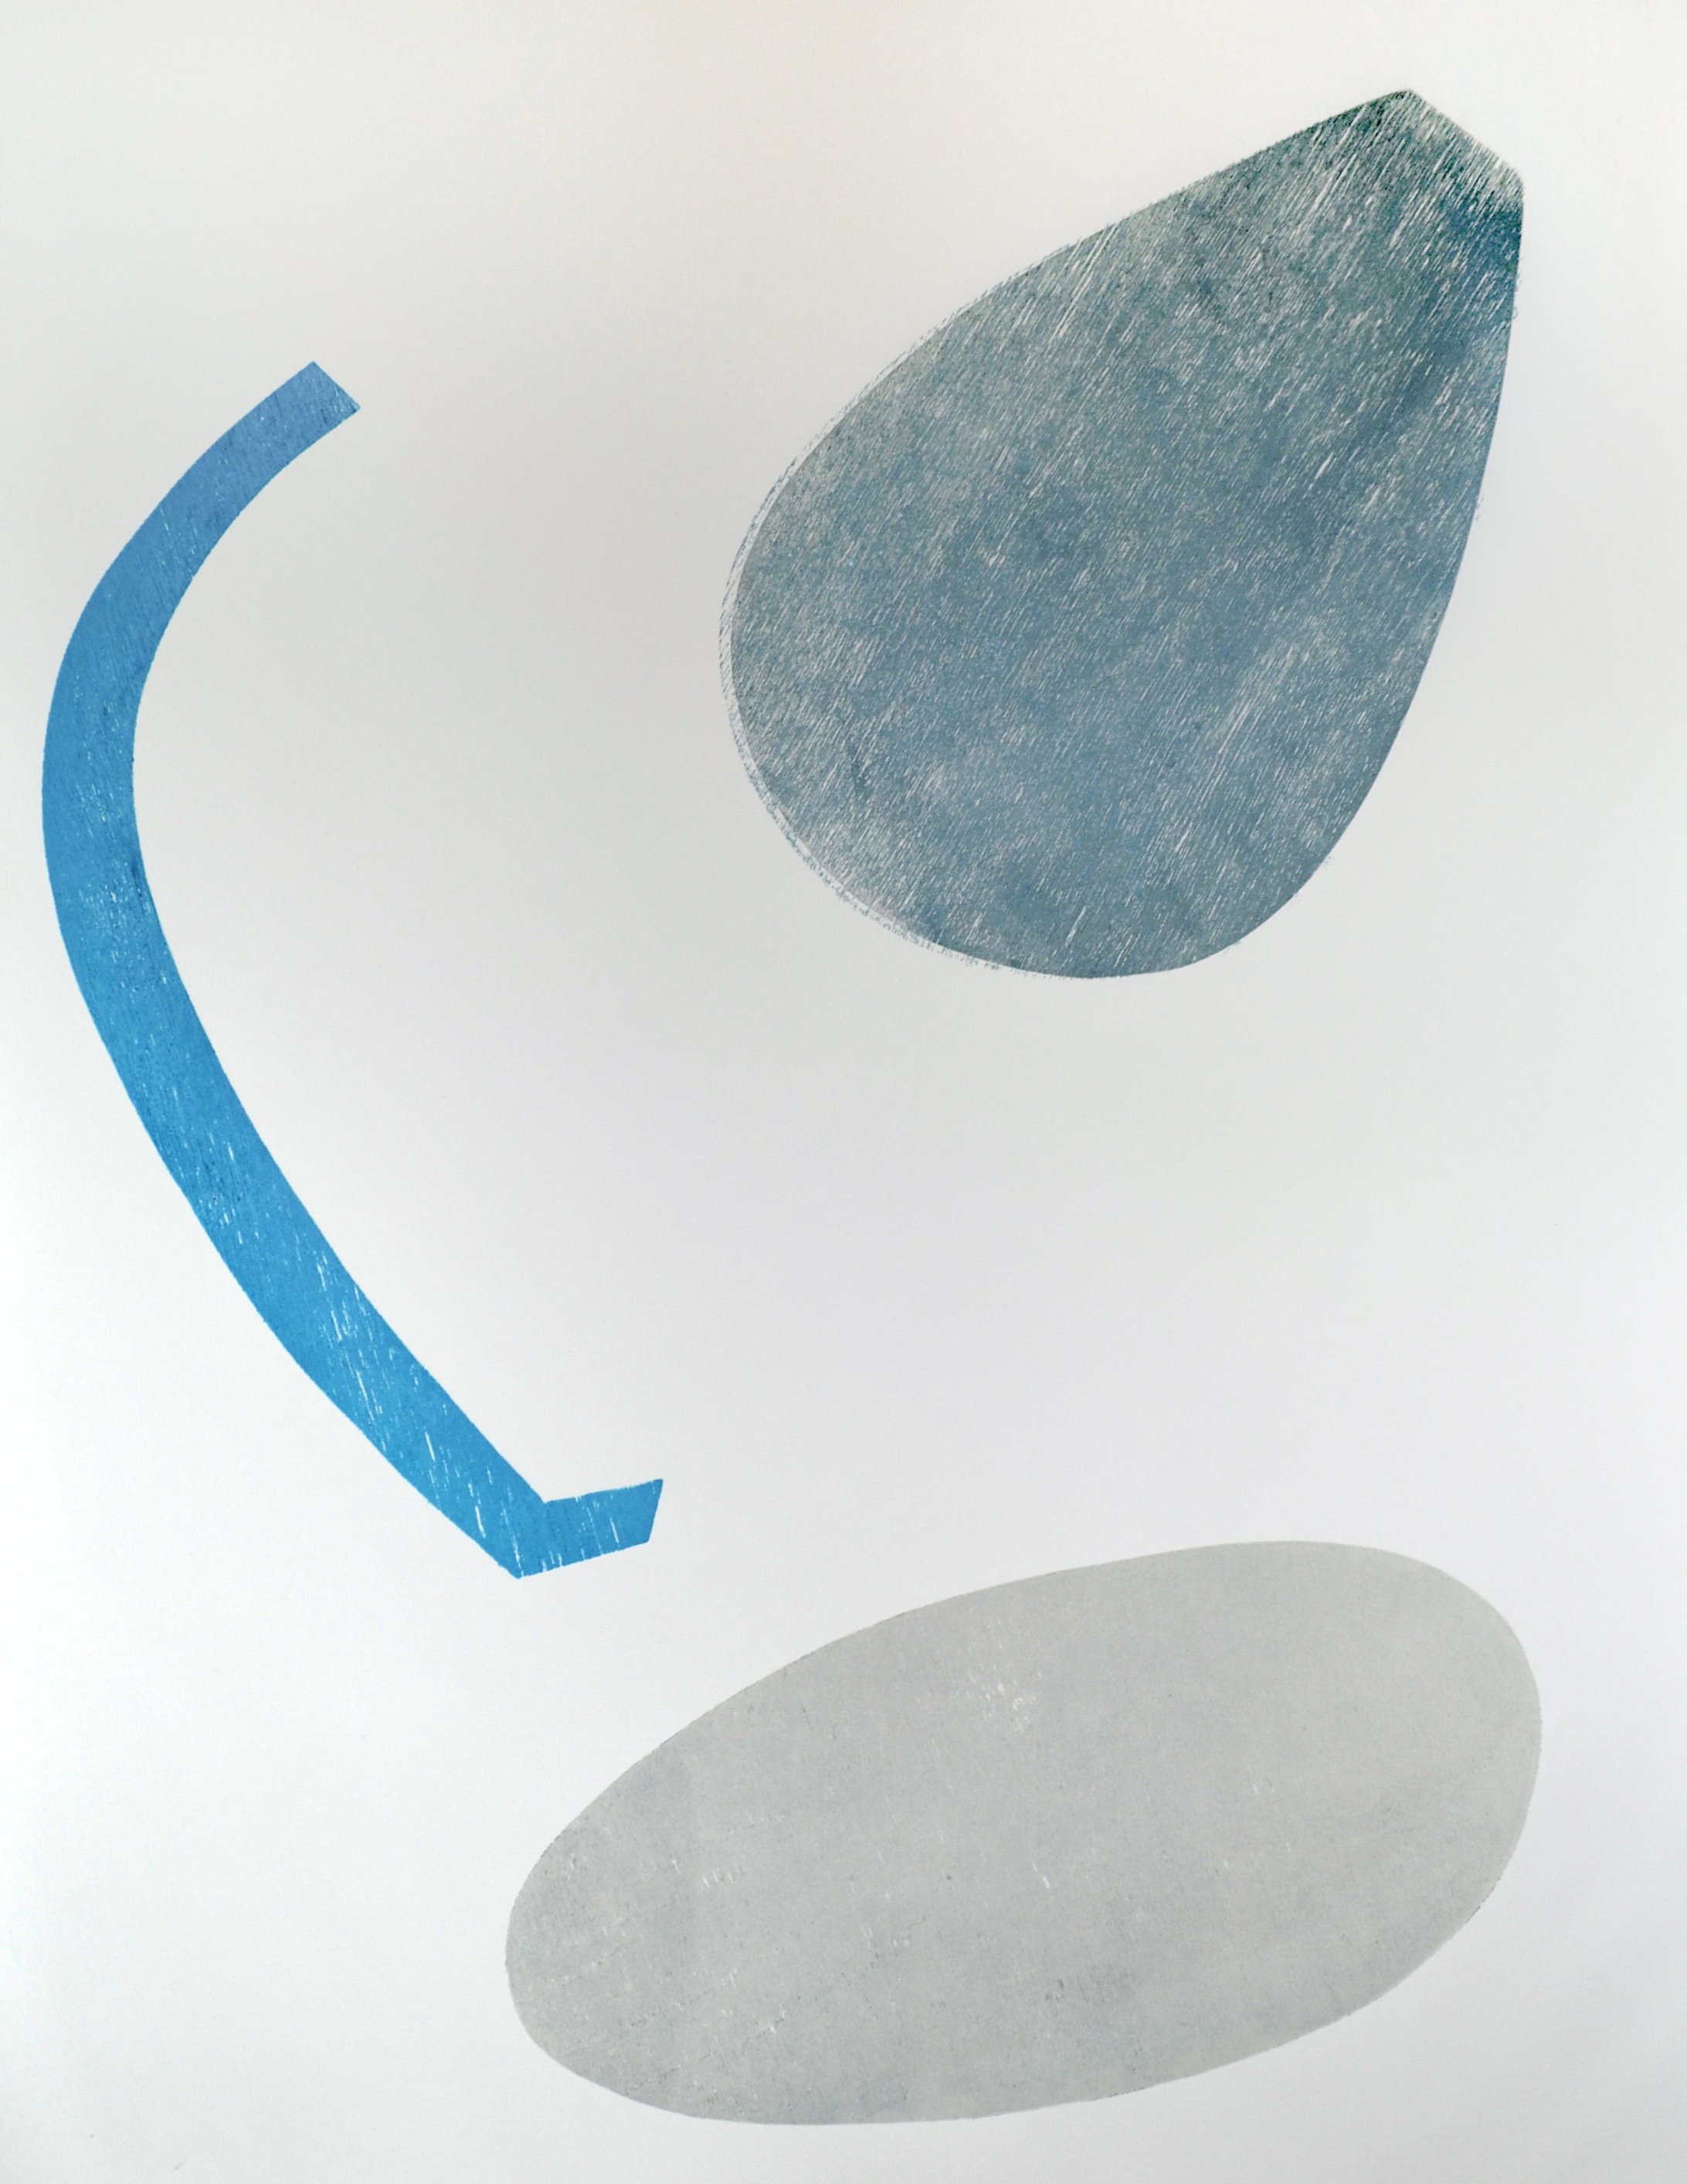 DANETTE ENGLISH  Vase Series #19  2012 relief monoprint on paper, 30 x 22 inches